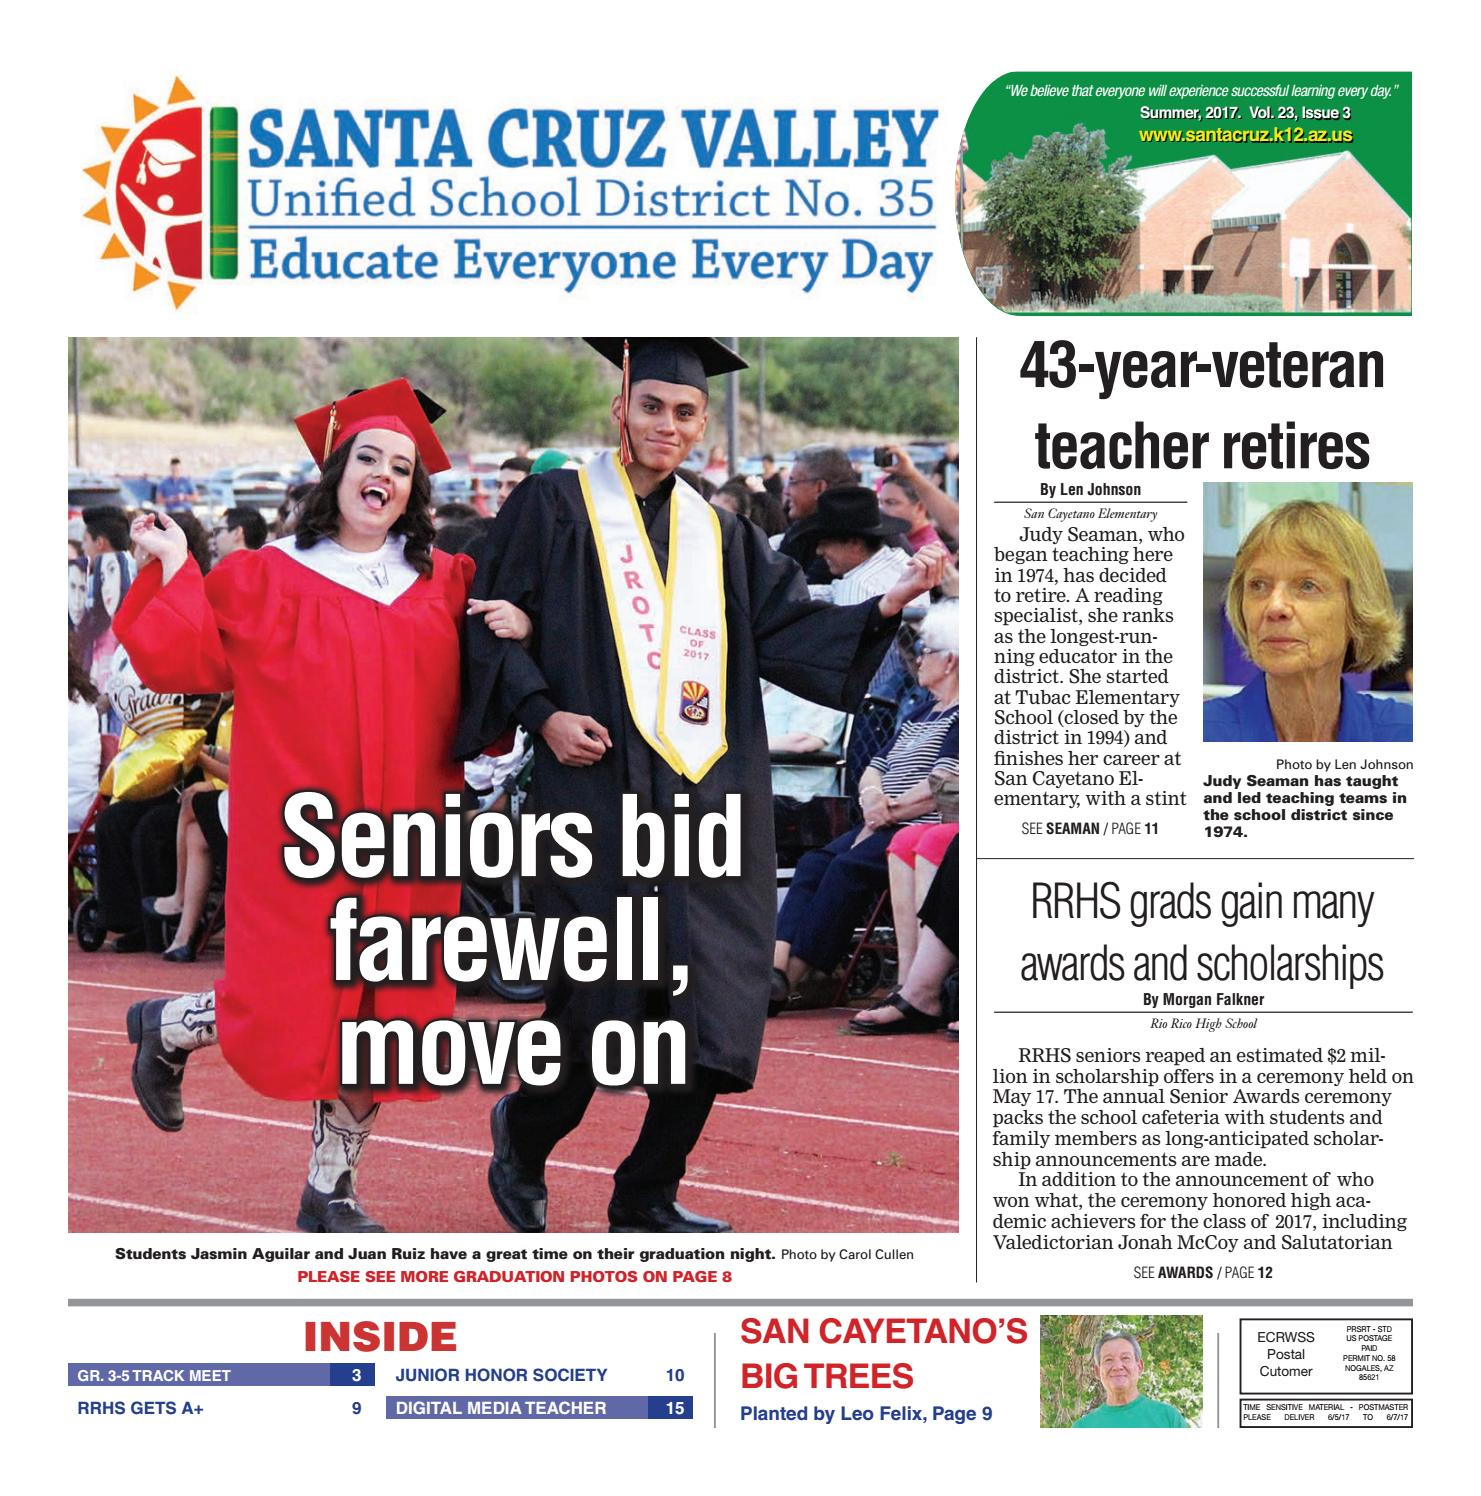 Schools Newsletter by Wick Communications - issuu